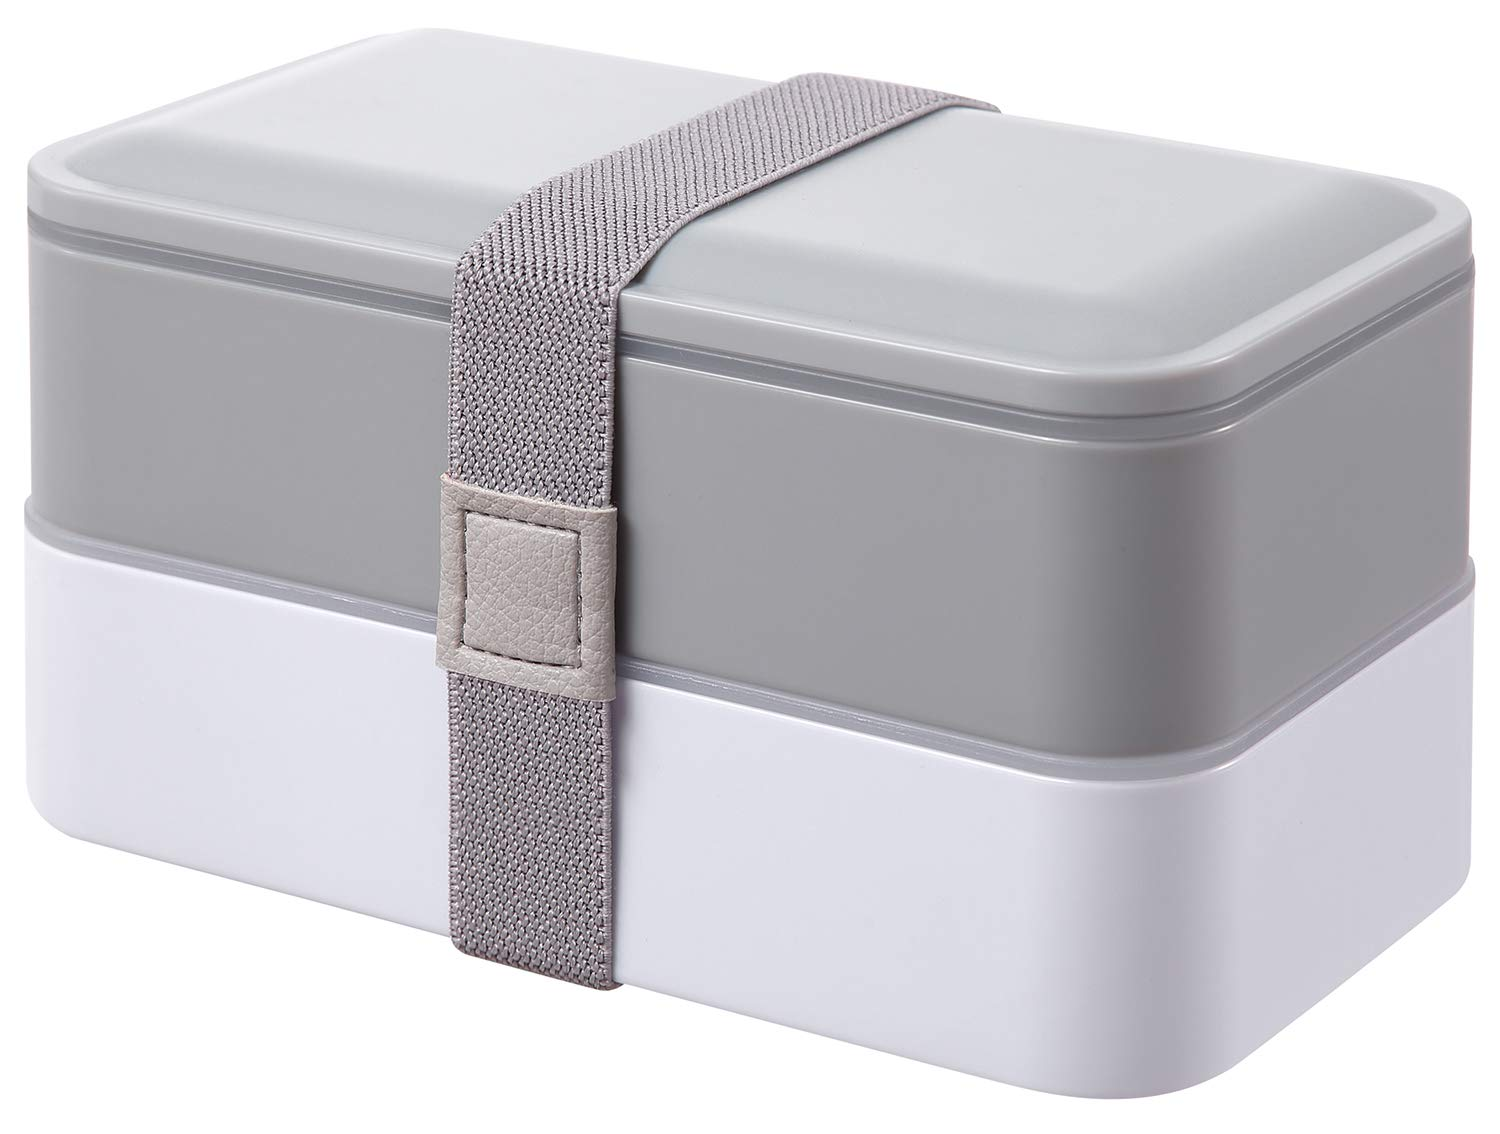 PuTwo Lunch Box 2 Tiers Bento Box BPA Free with Reusable Cutlery Japanese Style Lunch Boxes for Microwave Freezer Dishwasher Bento Lunch Box for Kids Adults - Gray